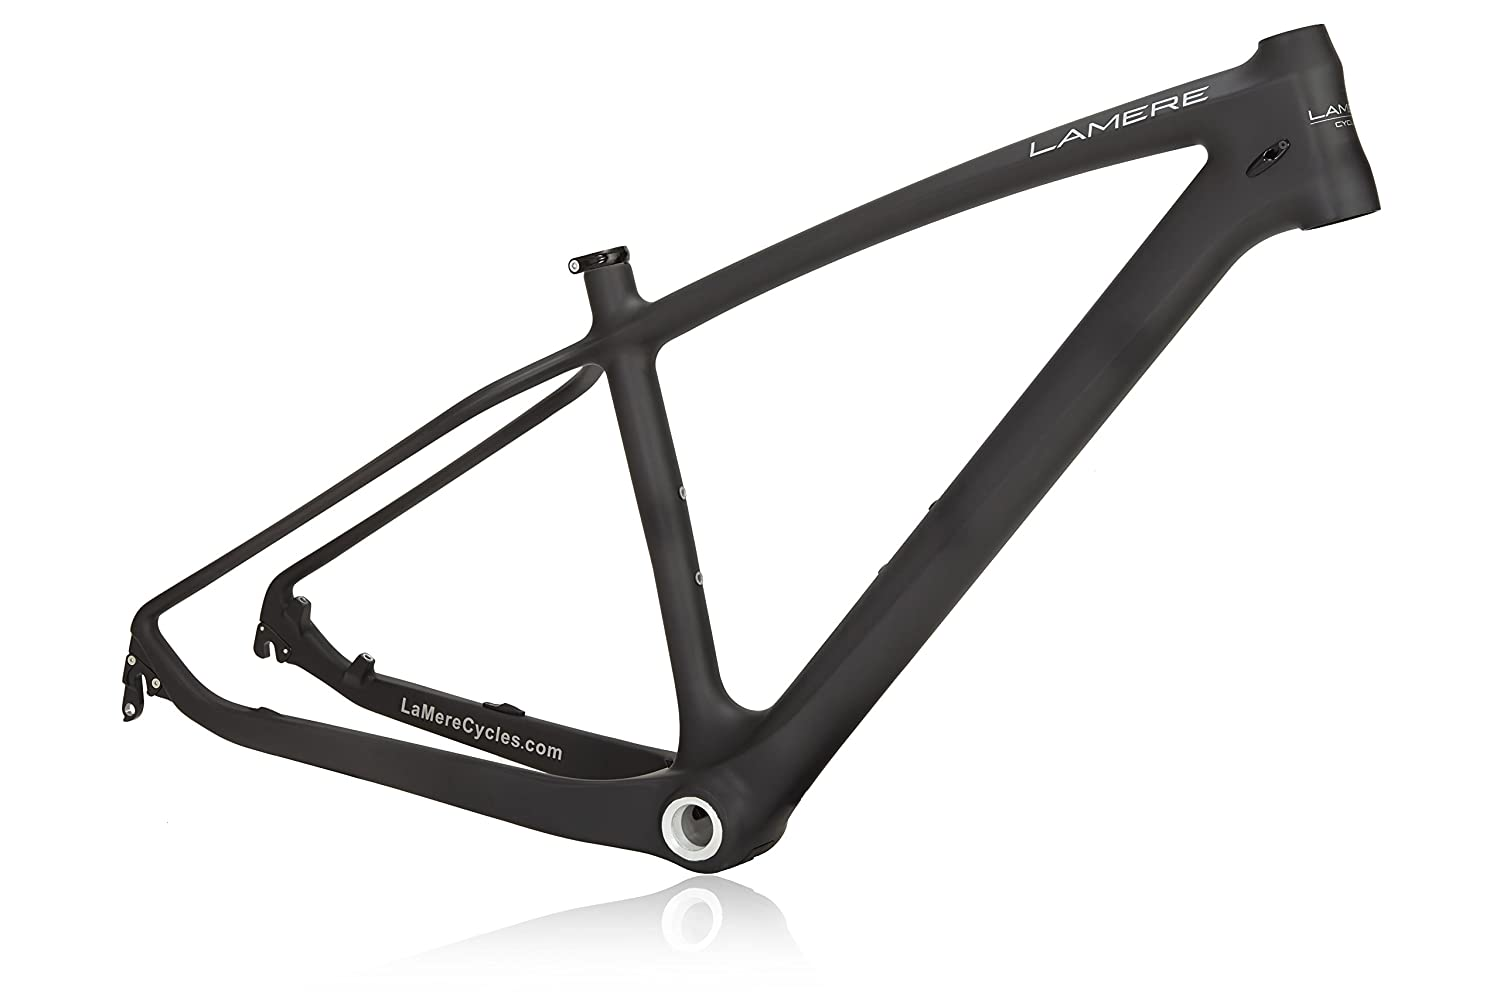 Amazon.com : Carbon Fat Bike Frame & Fork : Sports & Outdoors